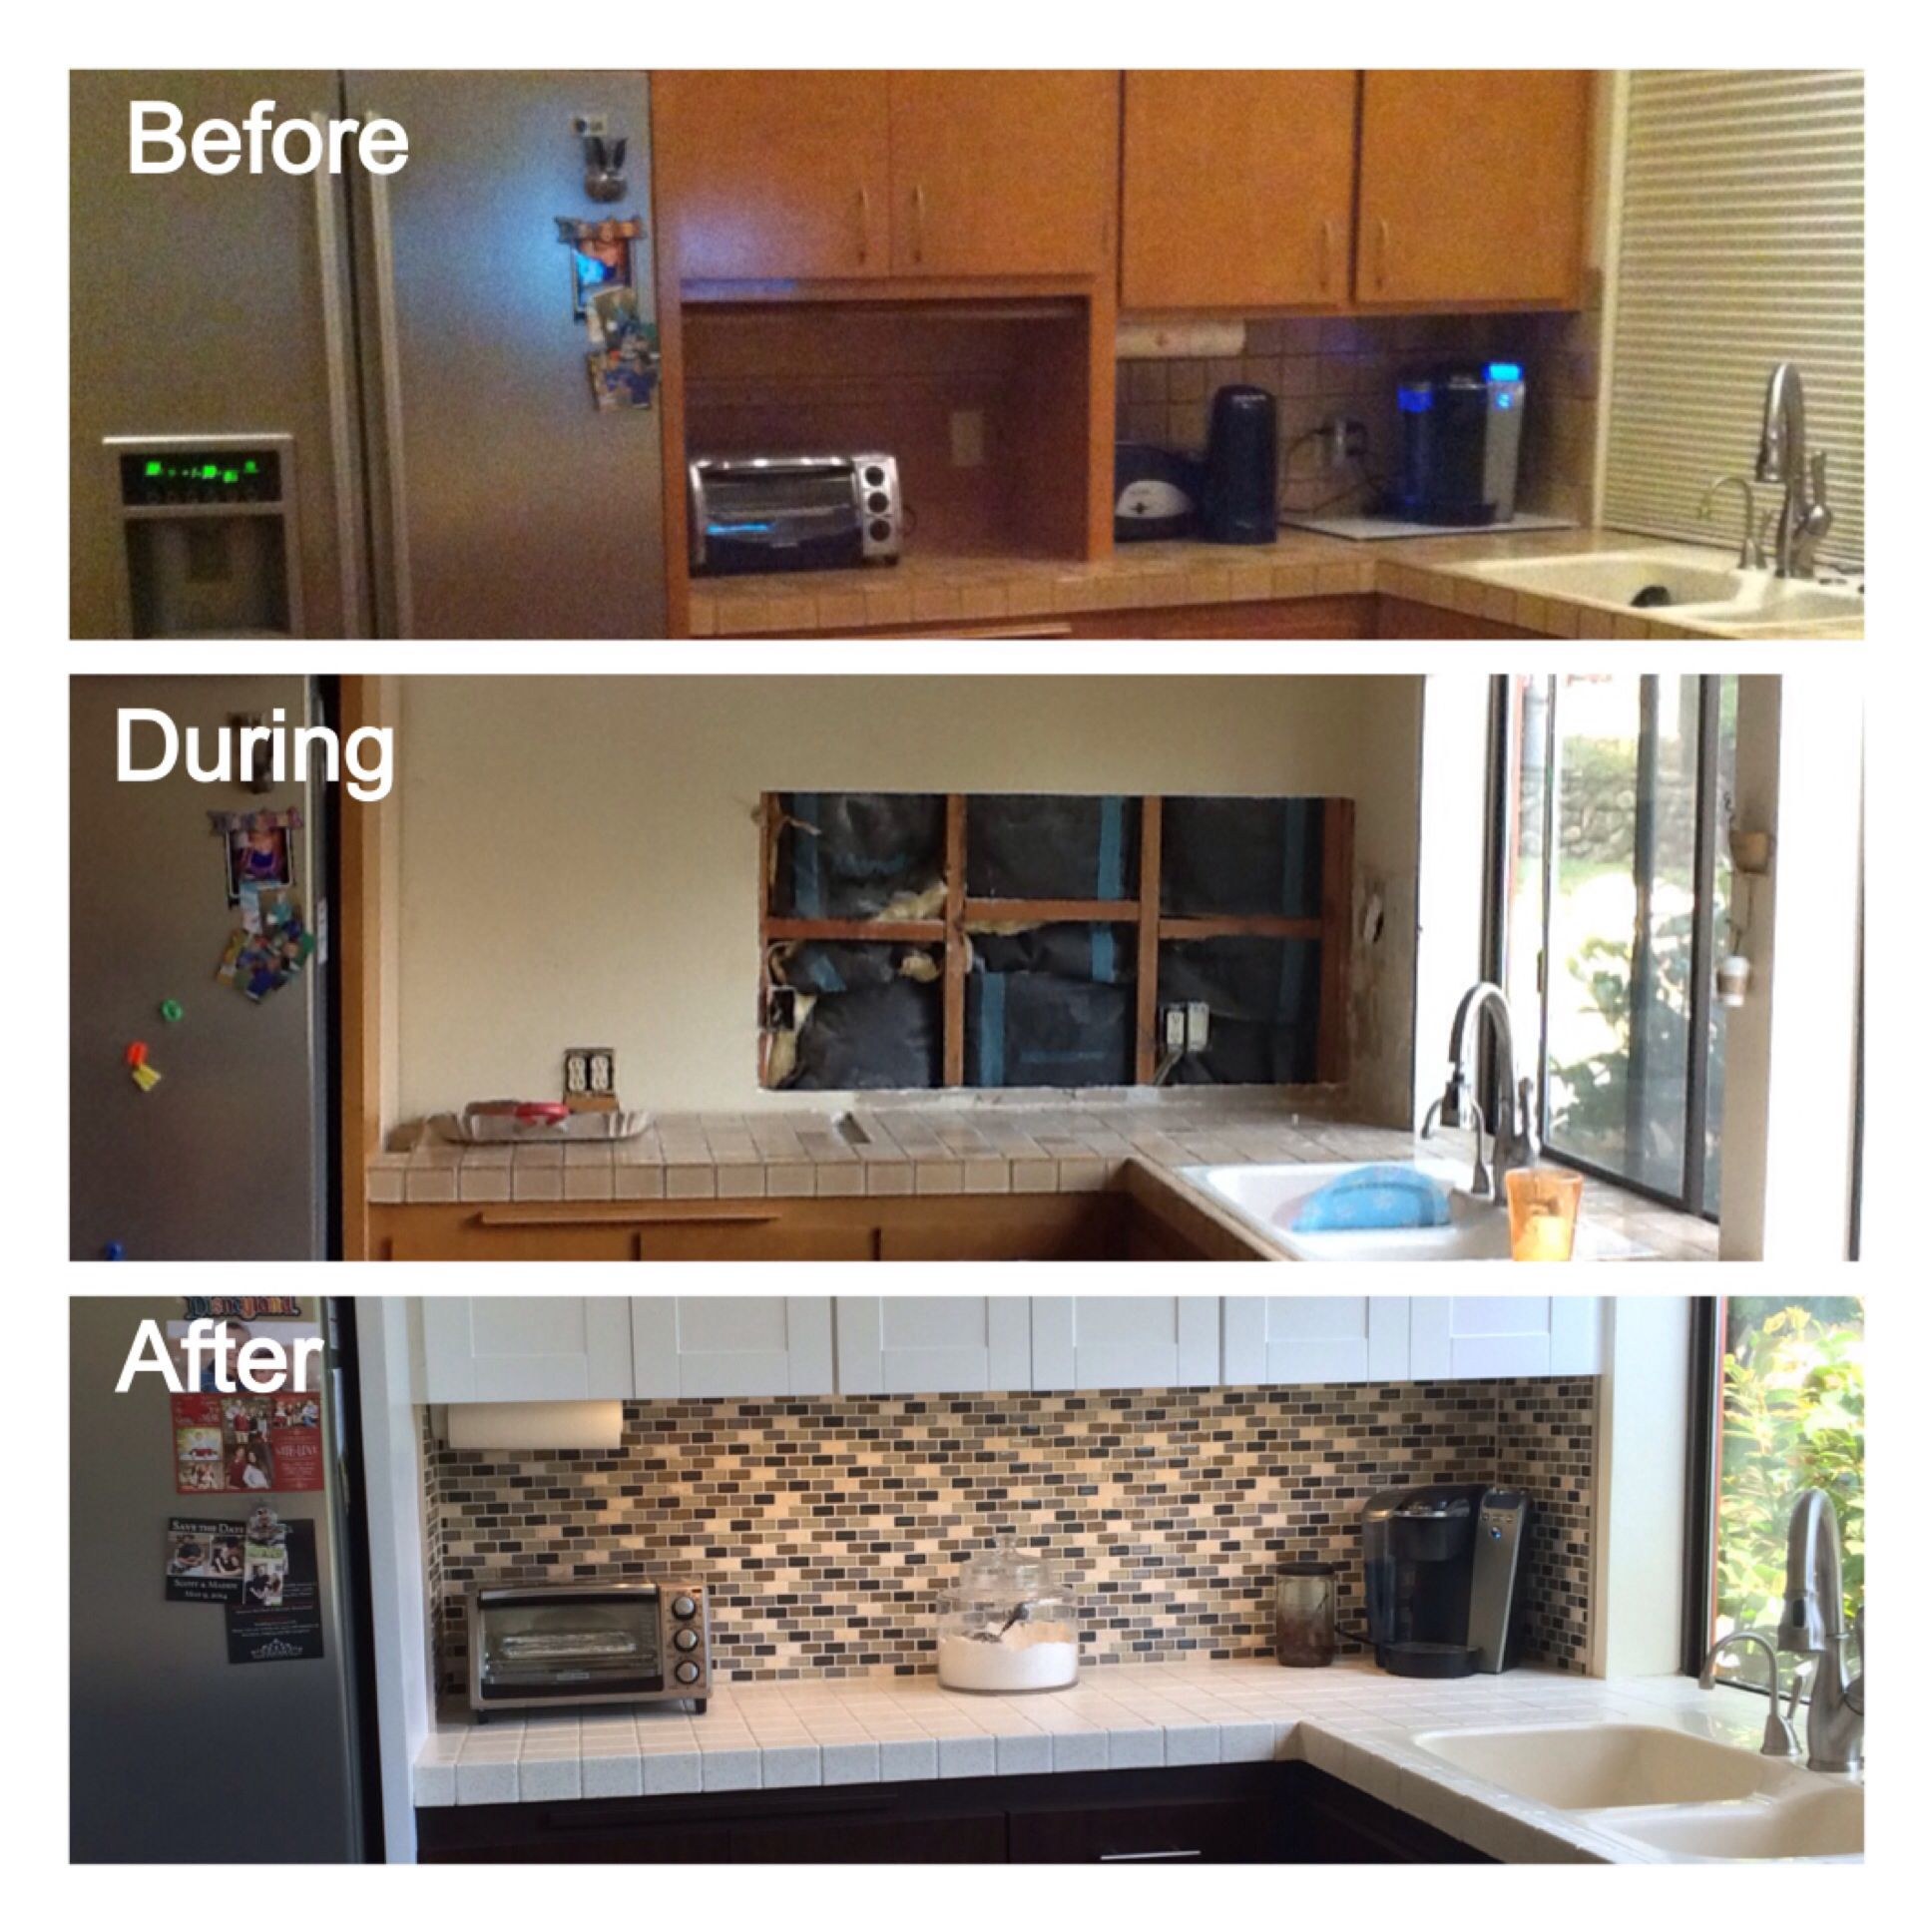 Before And After Kitchen Remodel Remove Appliance Garage Gain Counter Space How To Remove Kitchen Cabinets Kitchen Cabinets Kitchen Board